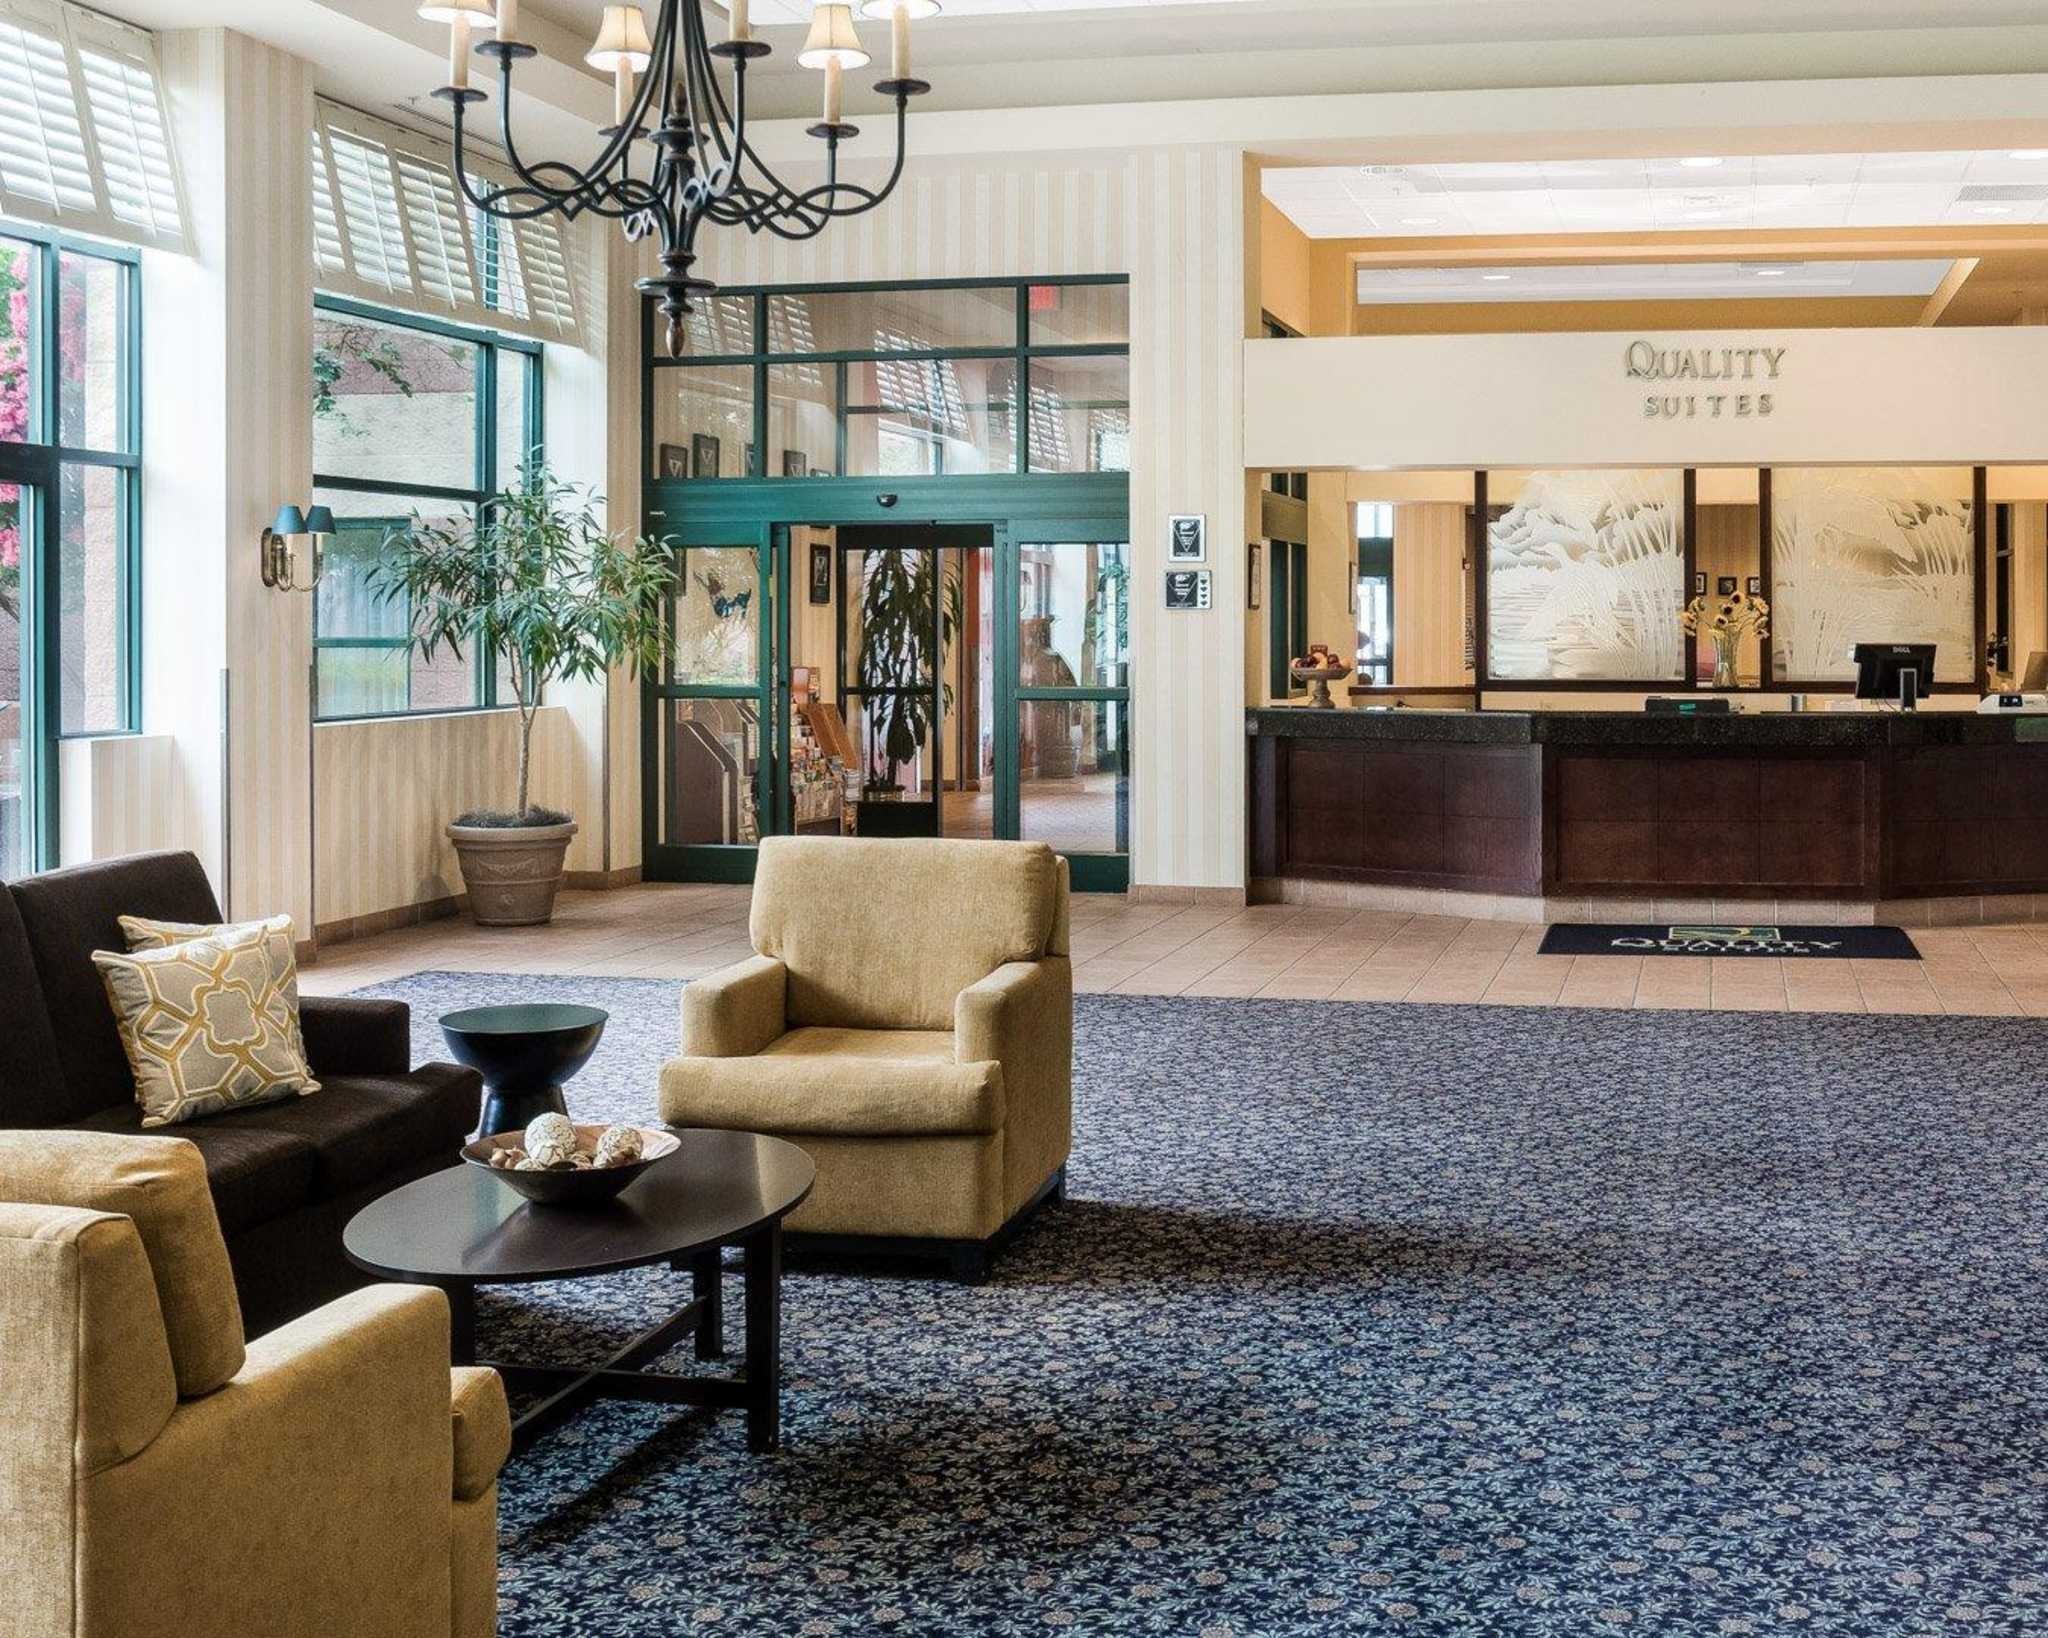 Quality Suites Lake Wright - Norfolk Airport image 2